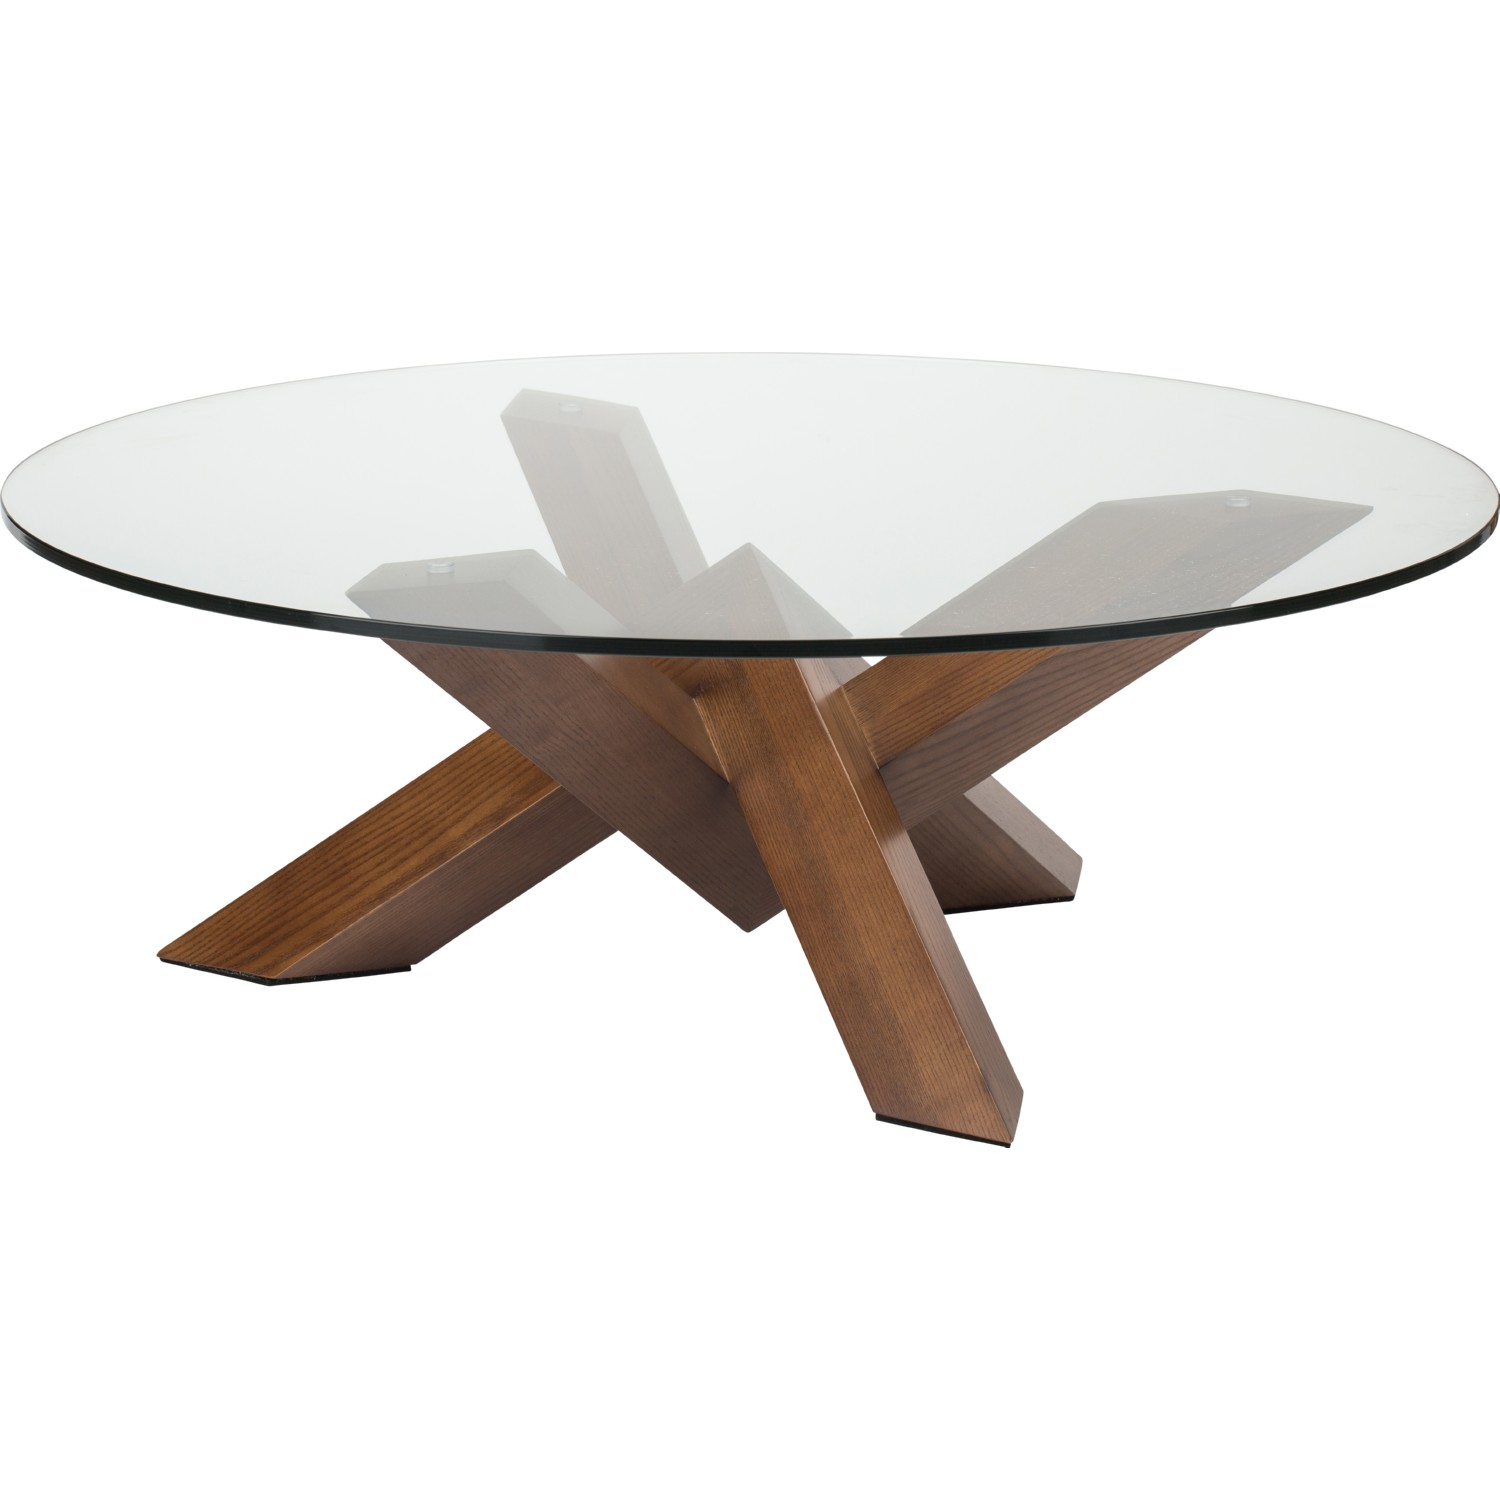 Strange Como 41 Coffee Table W Round Clear Glass Top On Geometric Stained Walnut Base By Nuevo Modern Furniture Andrewgaddart Wooden Chair Designs For Living Room Andrewgaddartcom